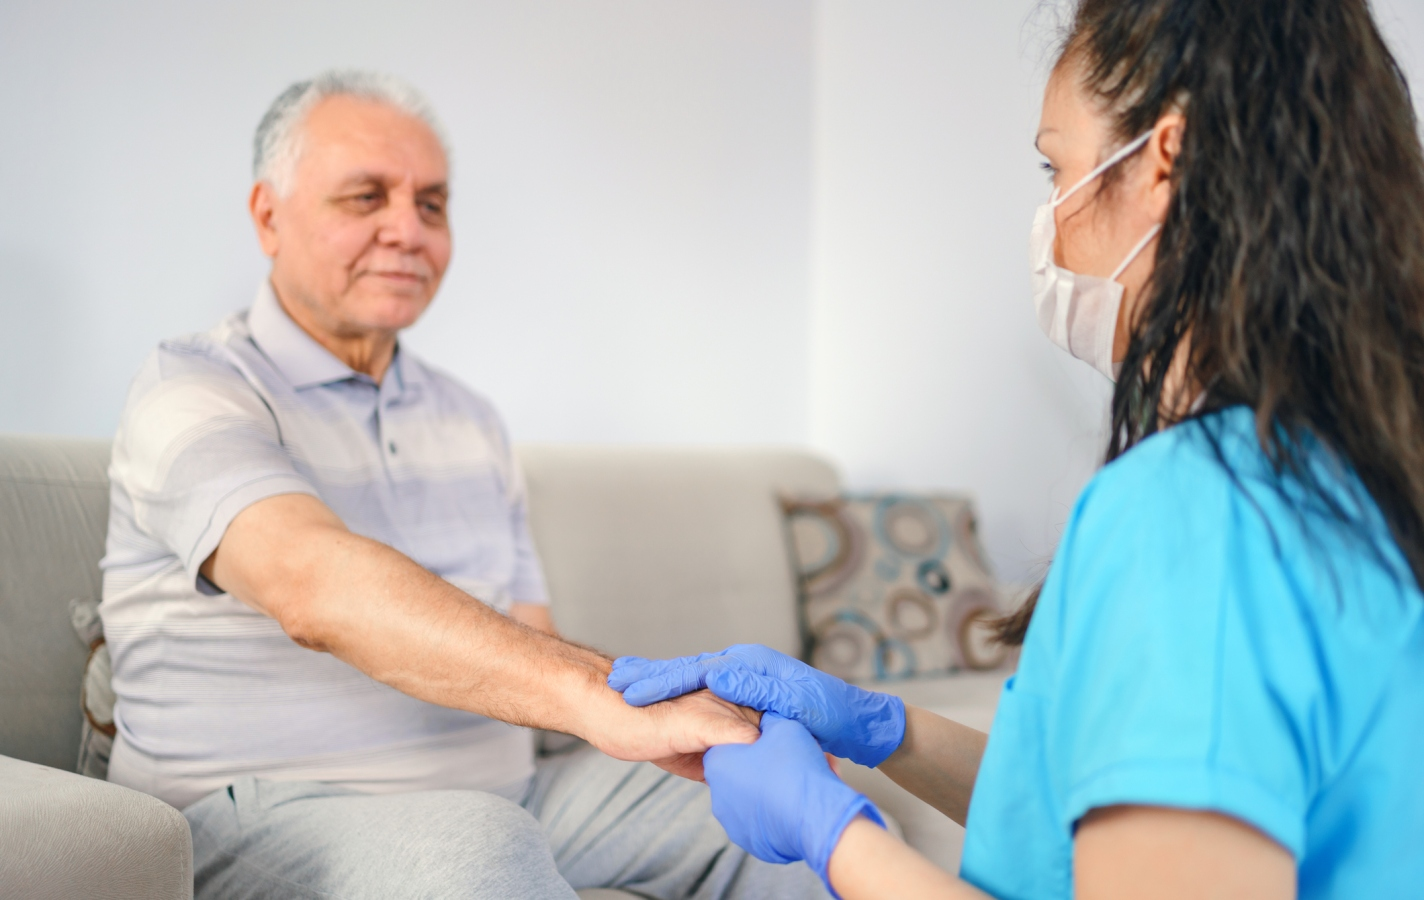 holding elderly patient's hand for health care trust and support